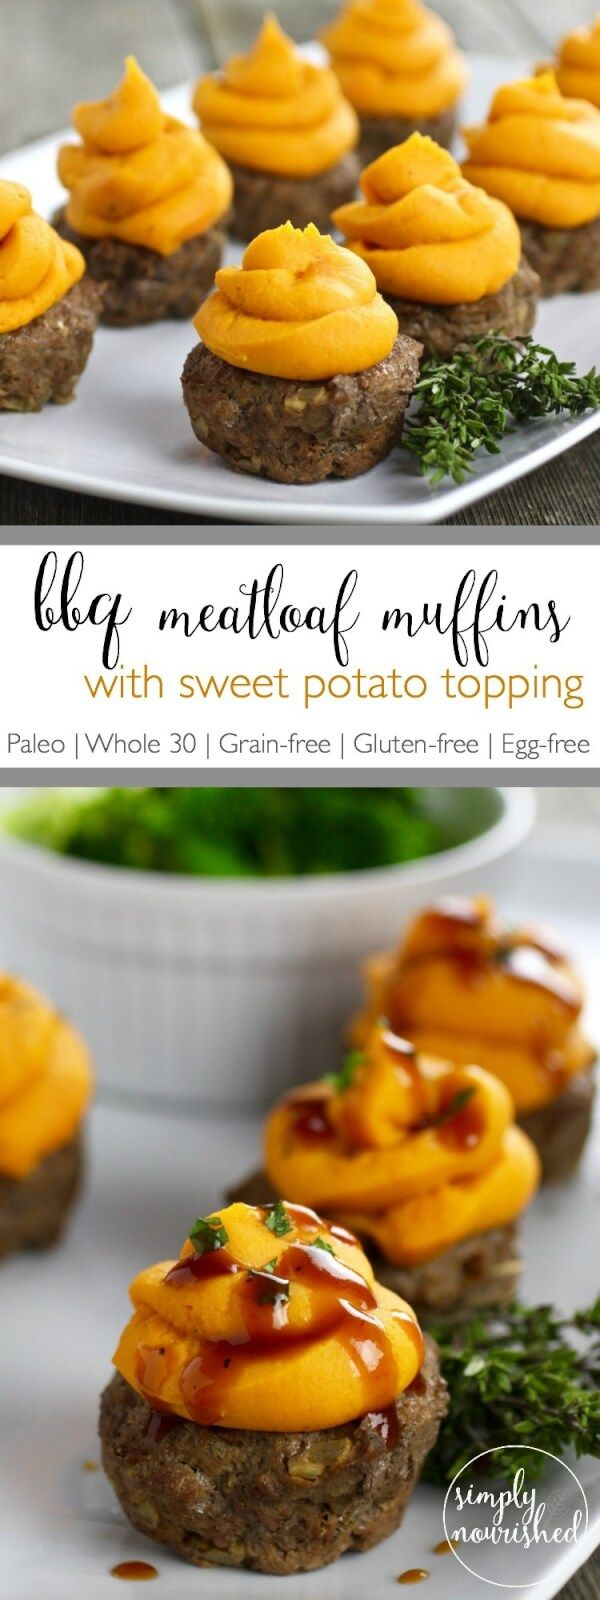 Paleo BBQ Meatloaf Muffins with Sweet Potato Topping Recipe